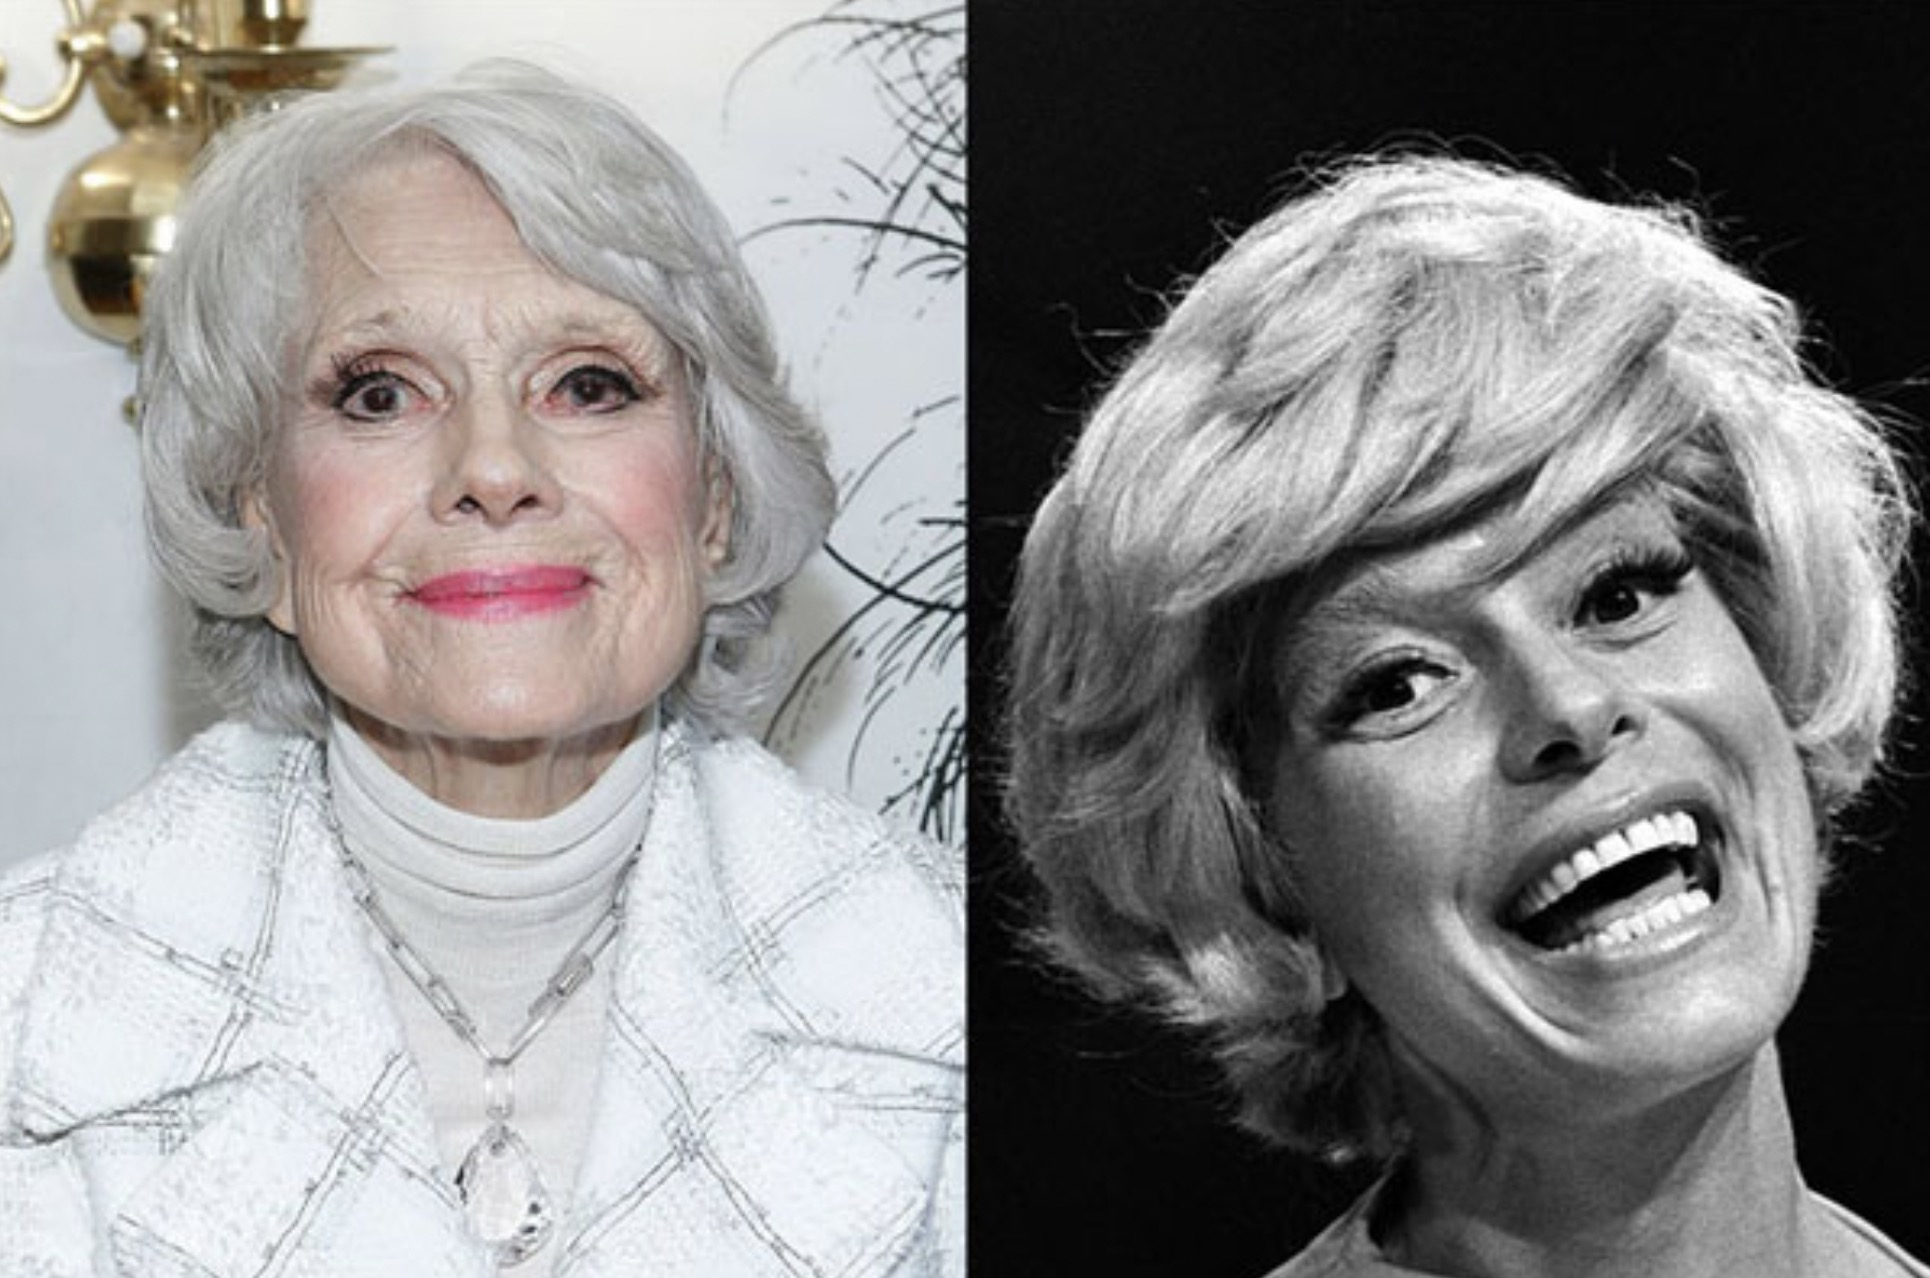 CAROL CHANNING, 97 YEARS OLD